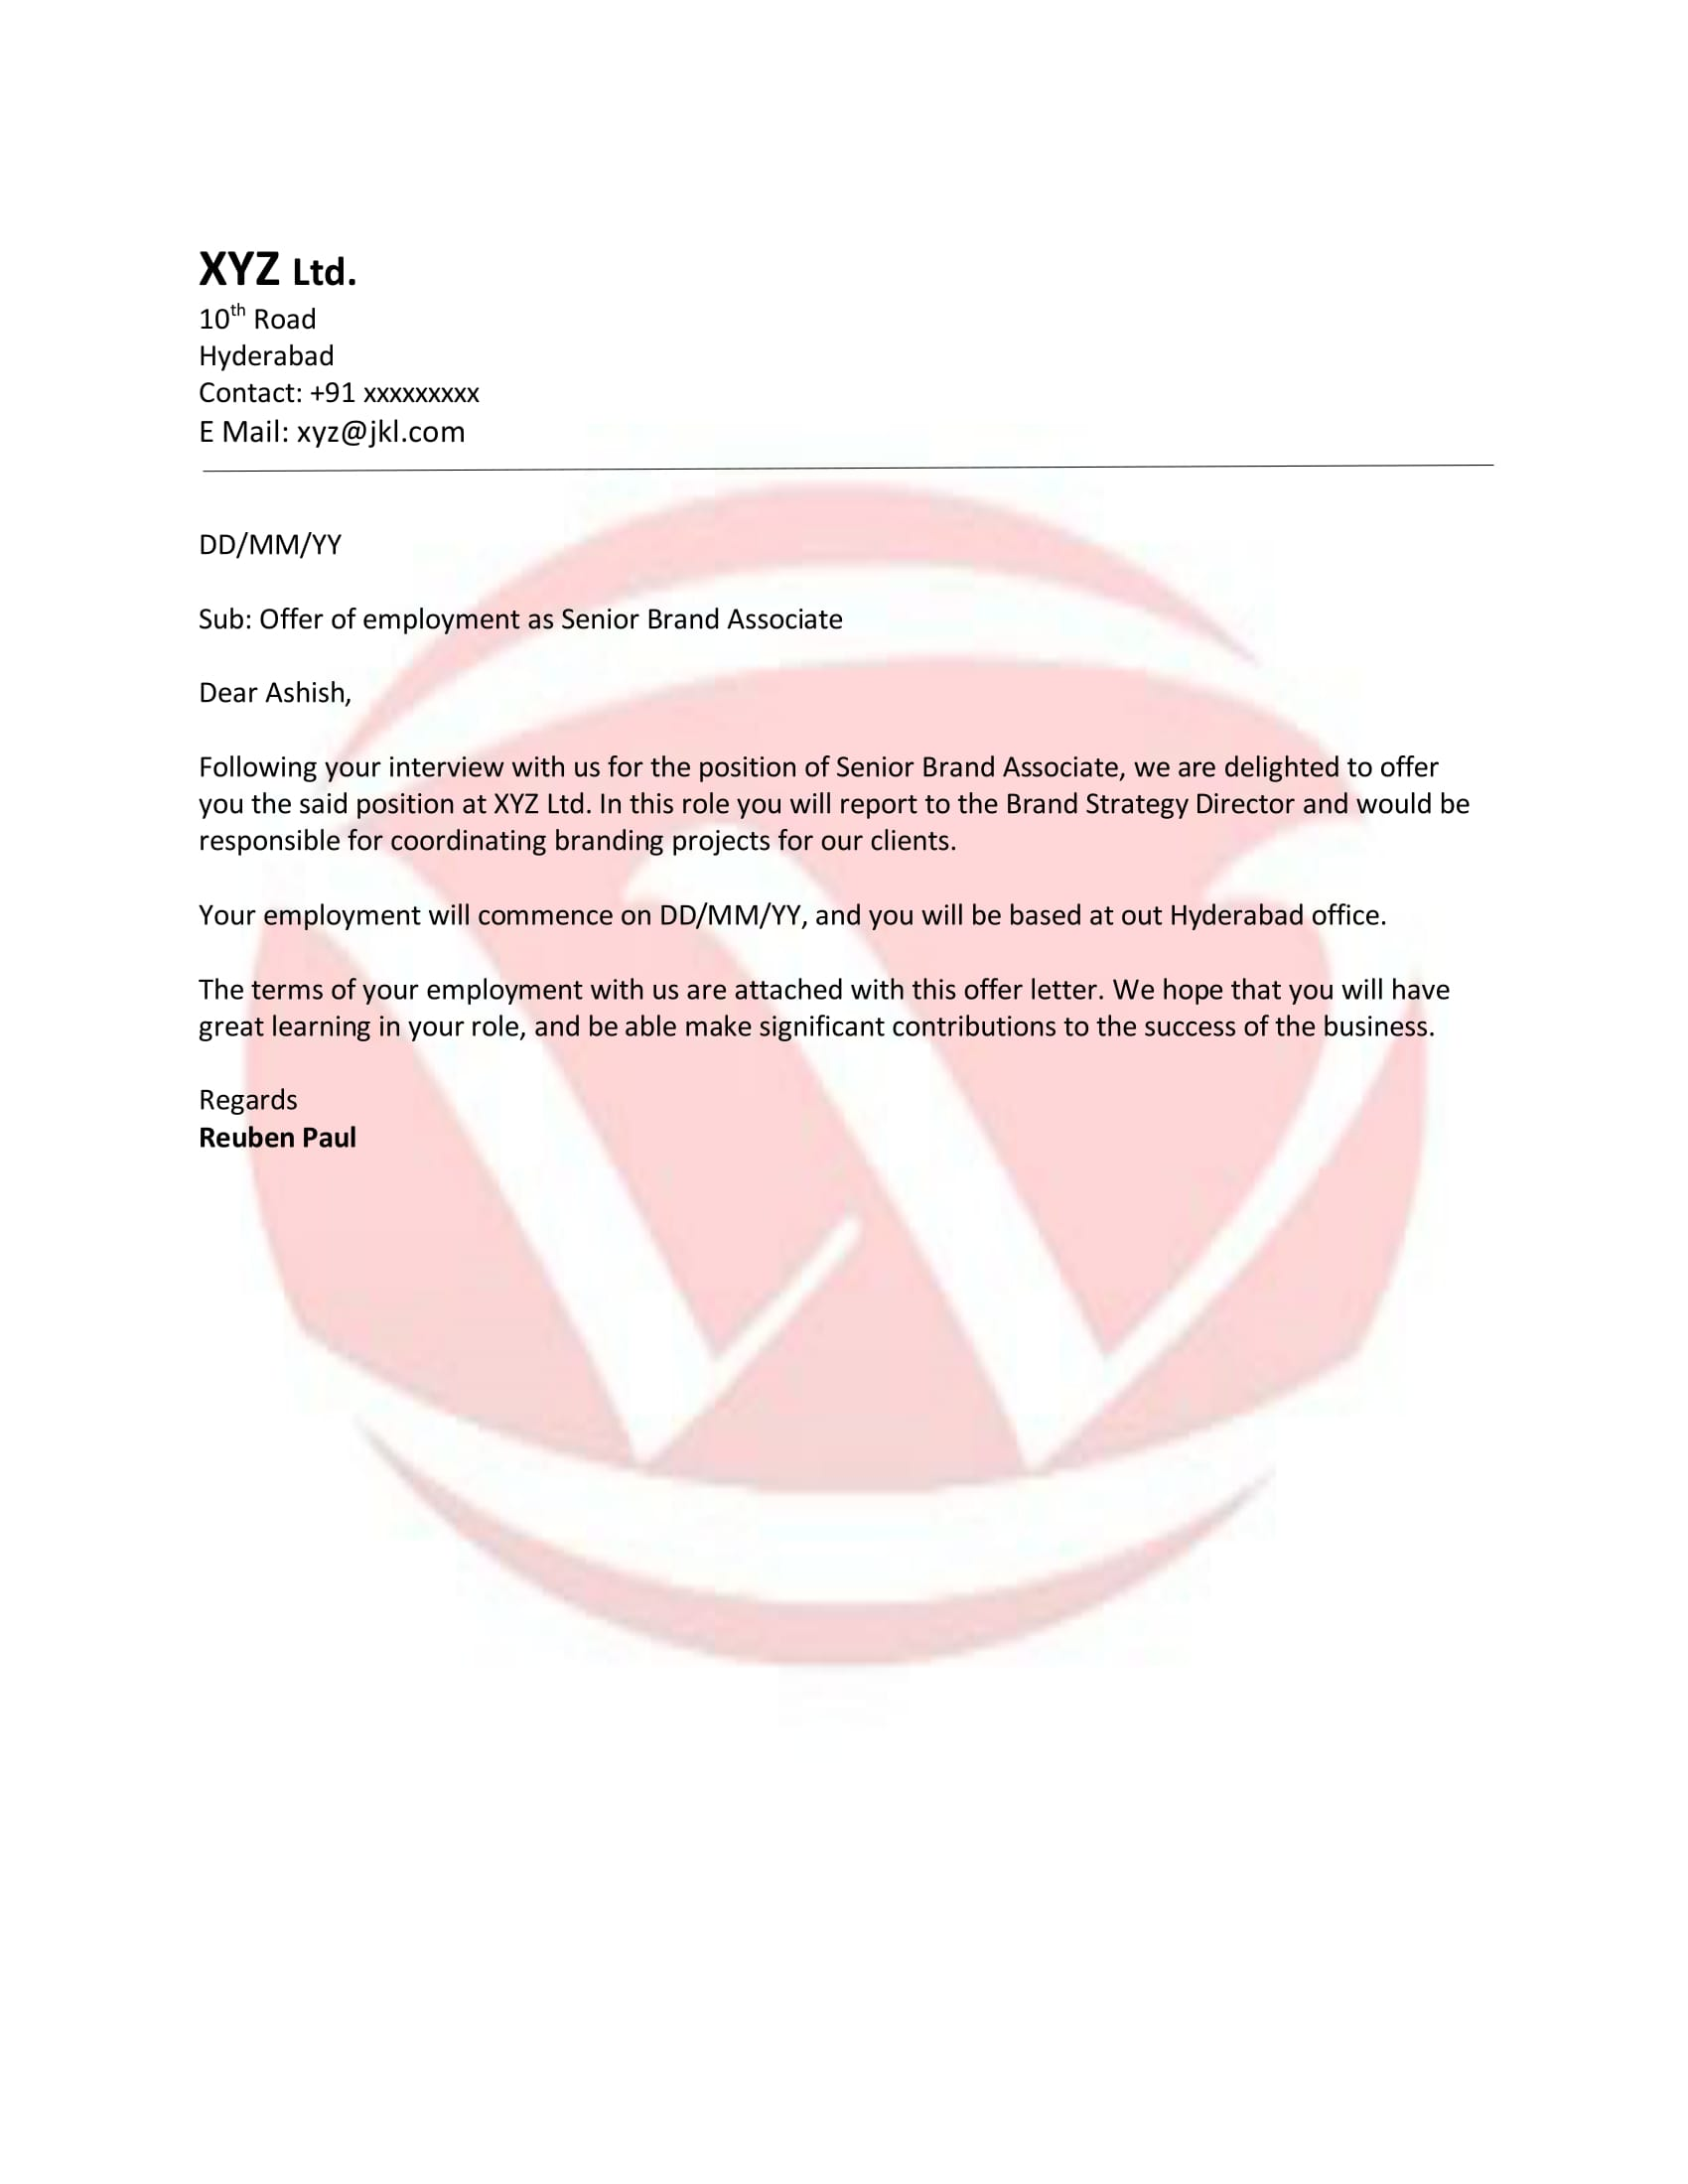 Project Confirmation Letter Format From Company. Offer Sample Letter Format  Download Templates